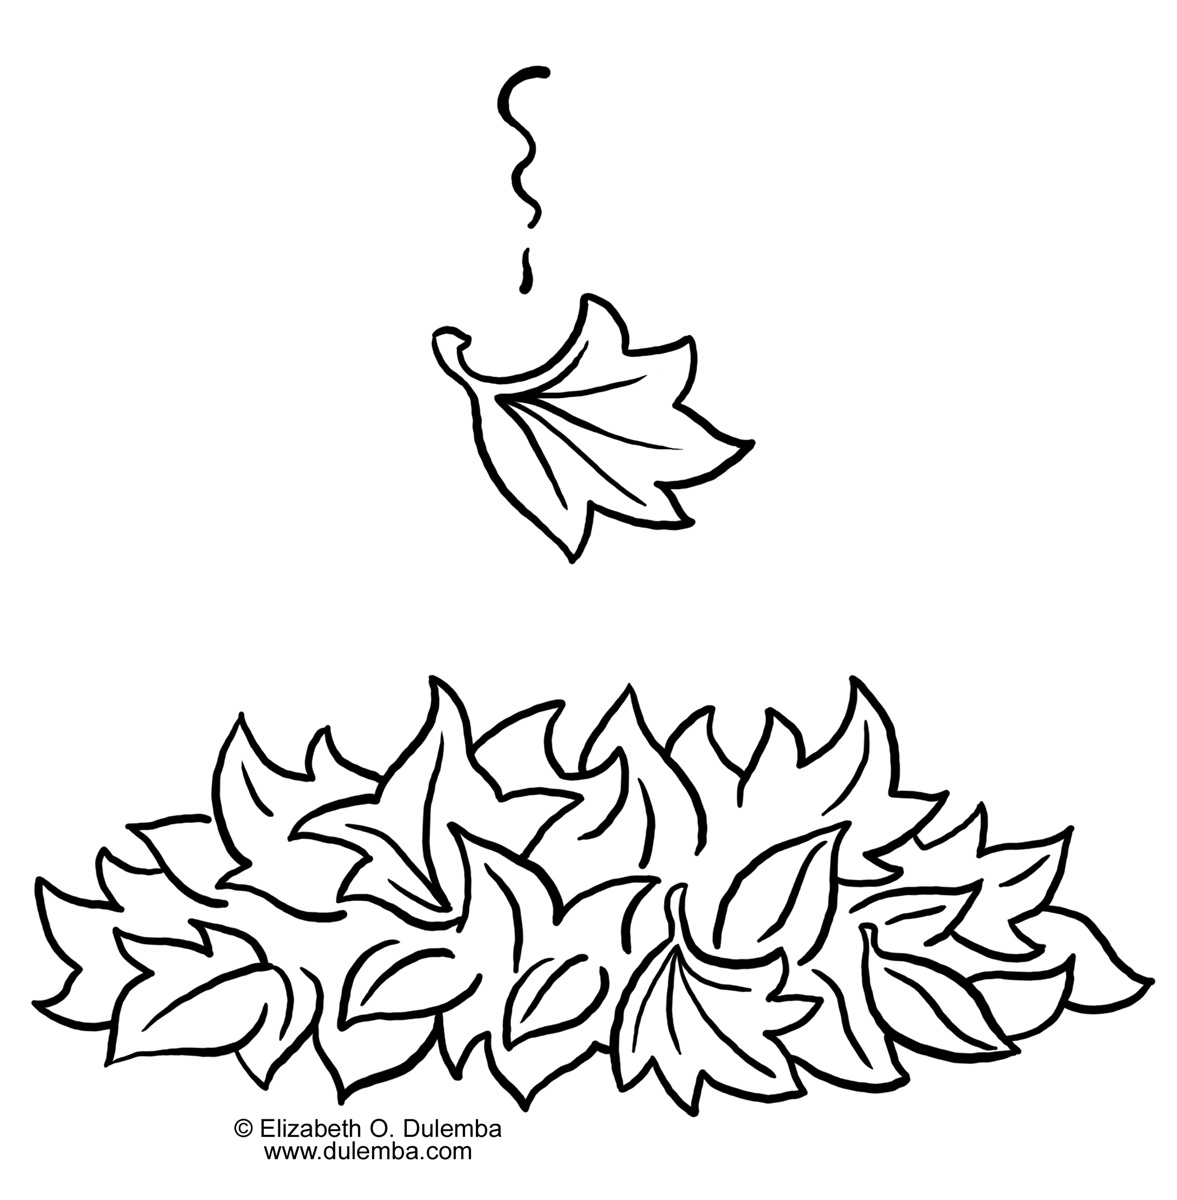 Pile of leaves clipart black and white image freeuse stock Leaf Pile Clipart Black And White image freeuse stock